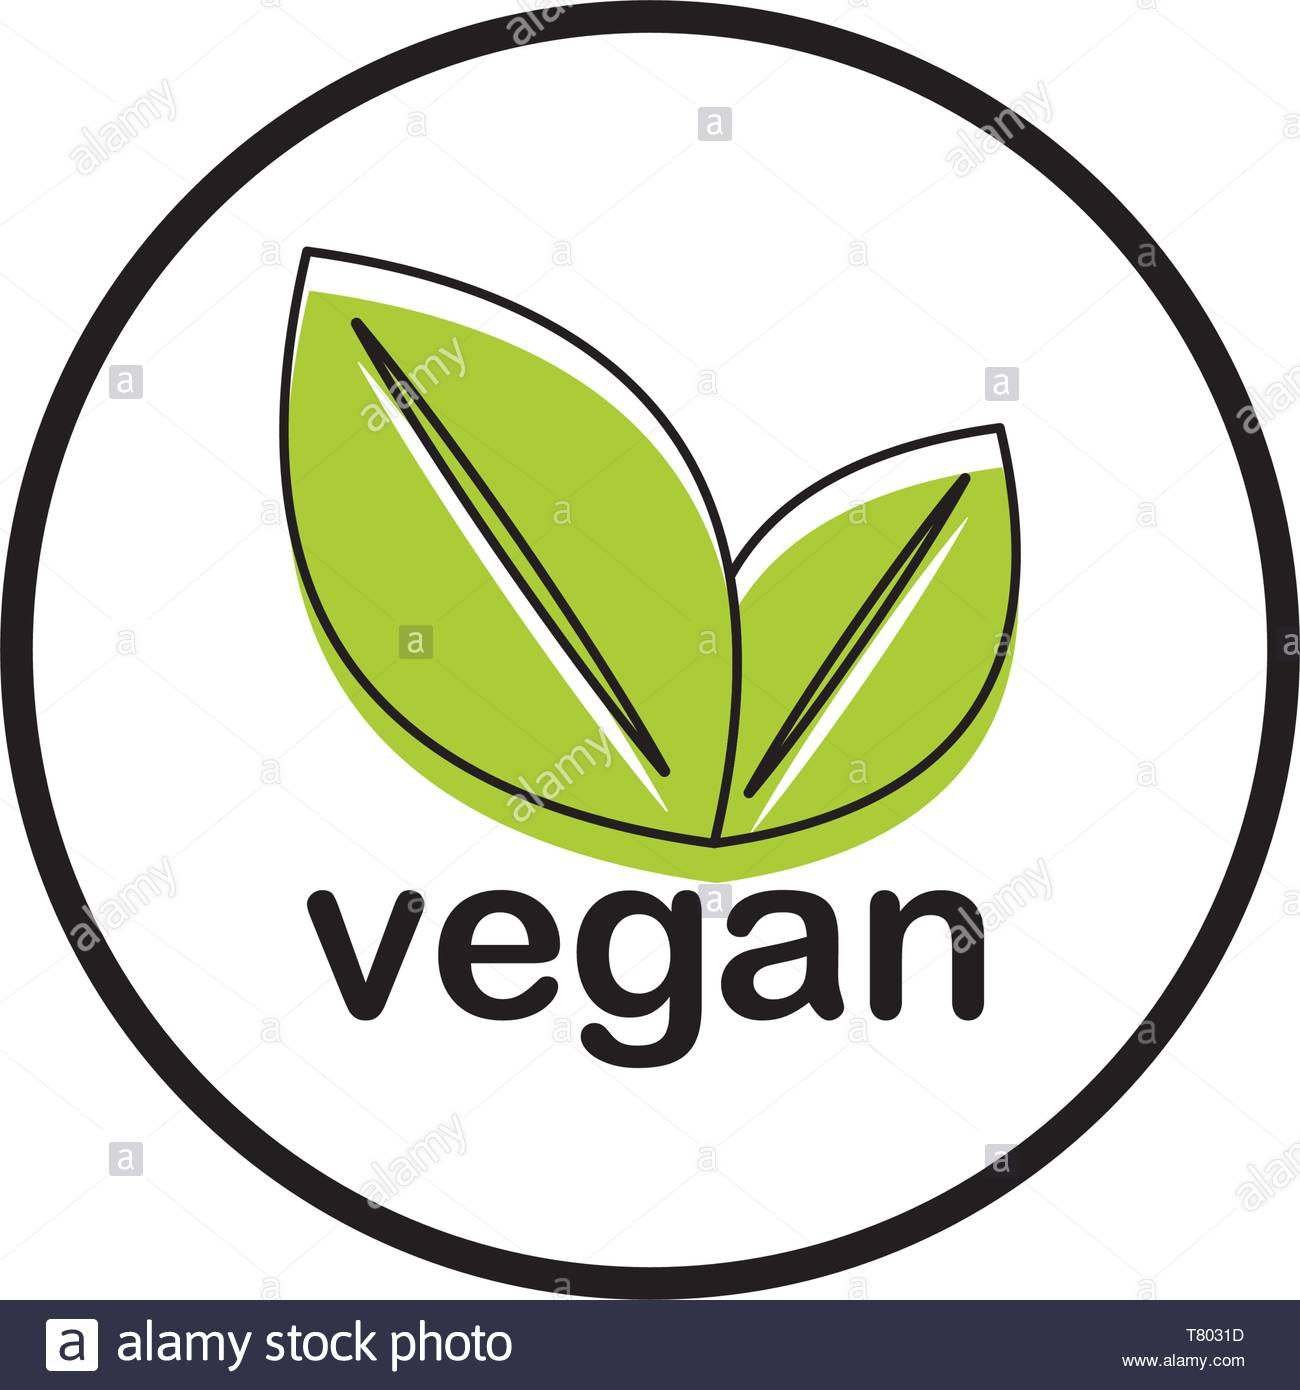 vegan food vector icon concept, isolated on white background